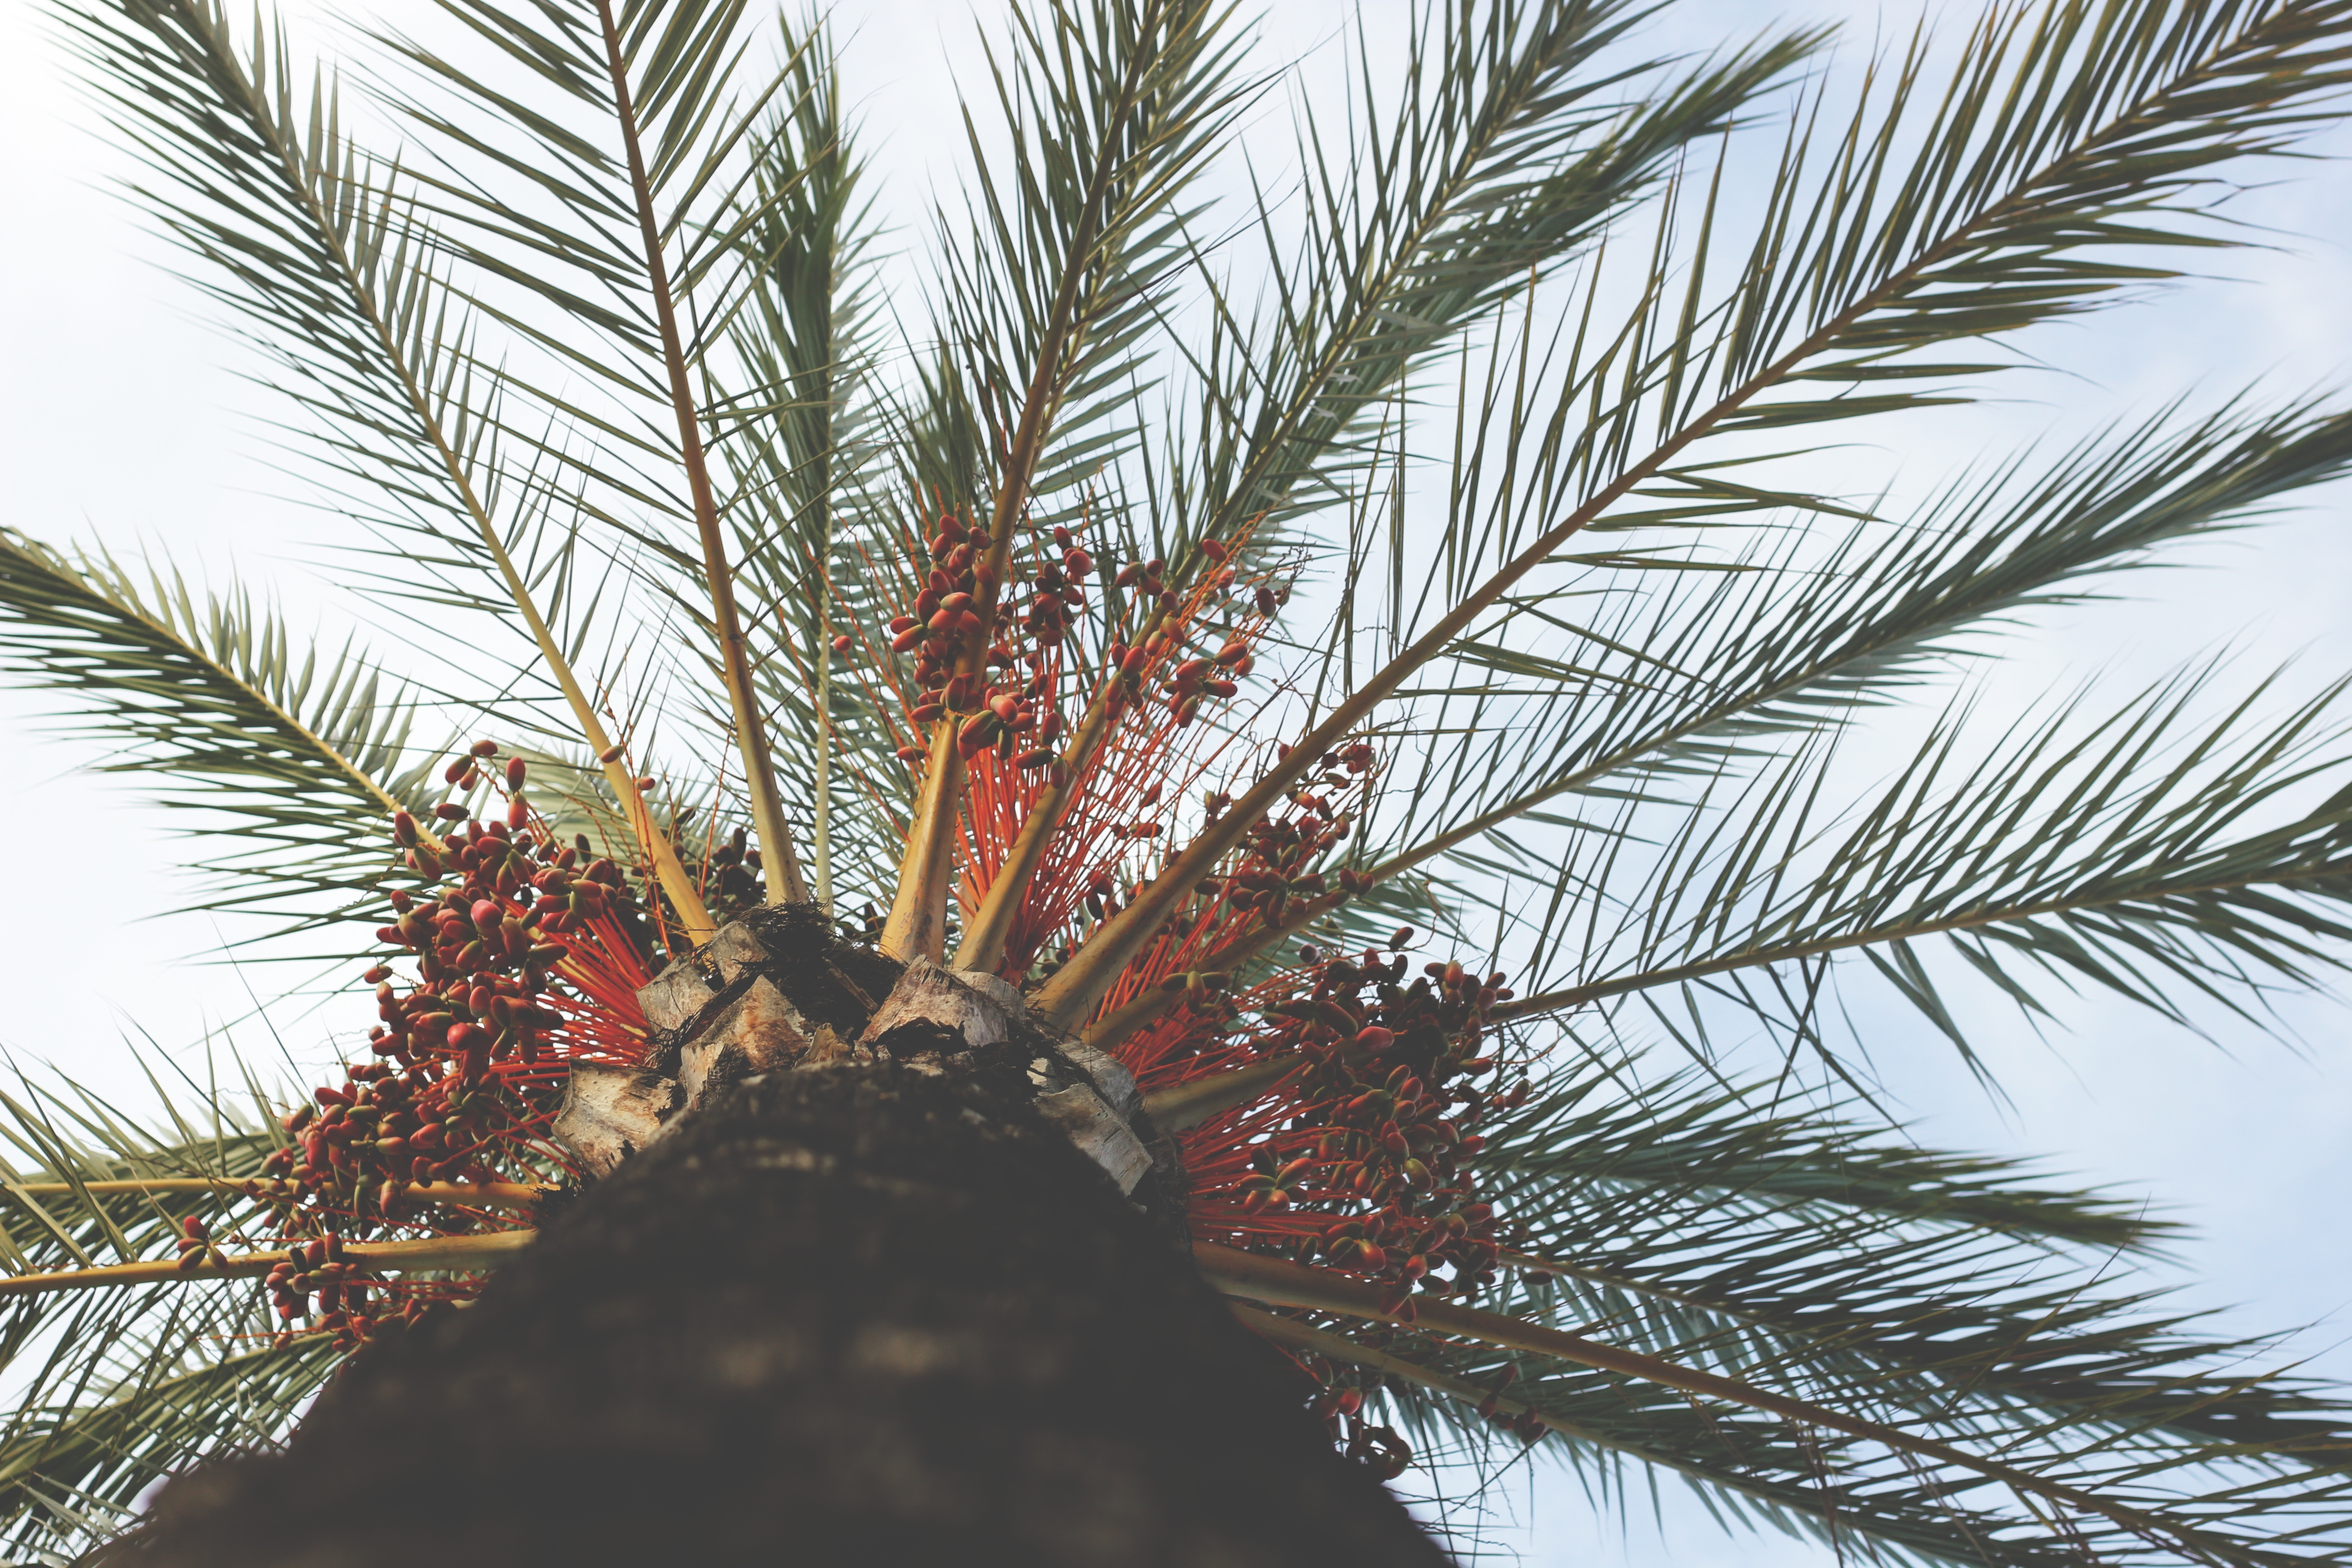 115555 download wallpaper Nature, Palm, Wood, Tree, Bottom View, Tropics, Branches, Trunk screensavers and pictures for free